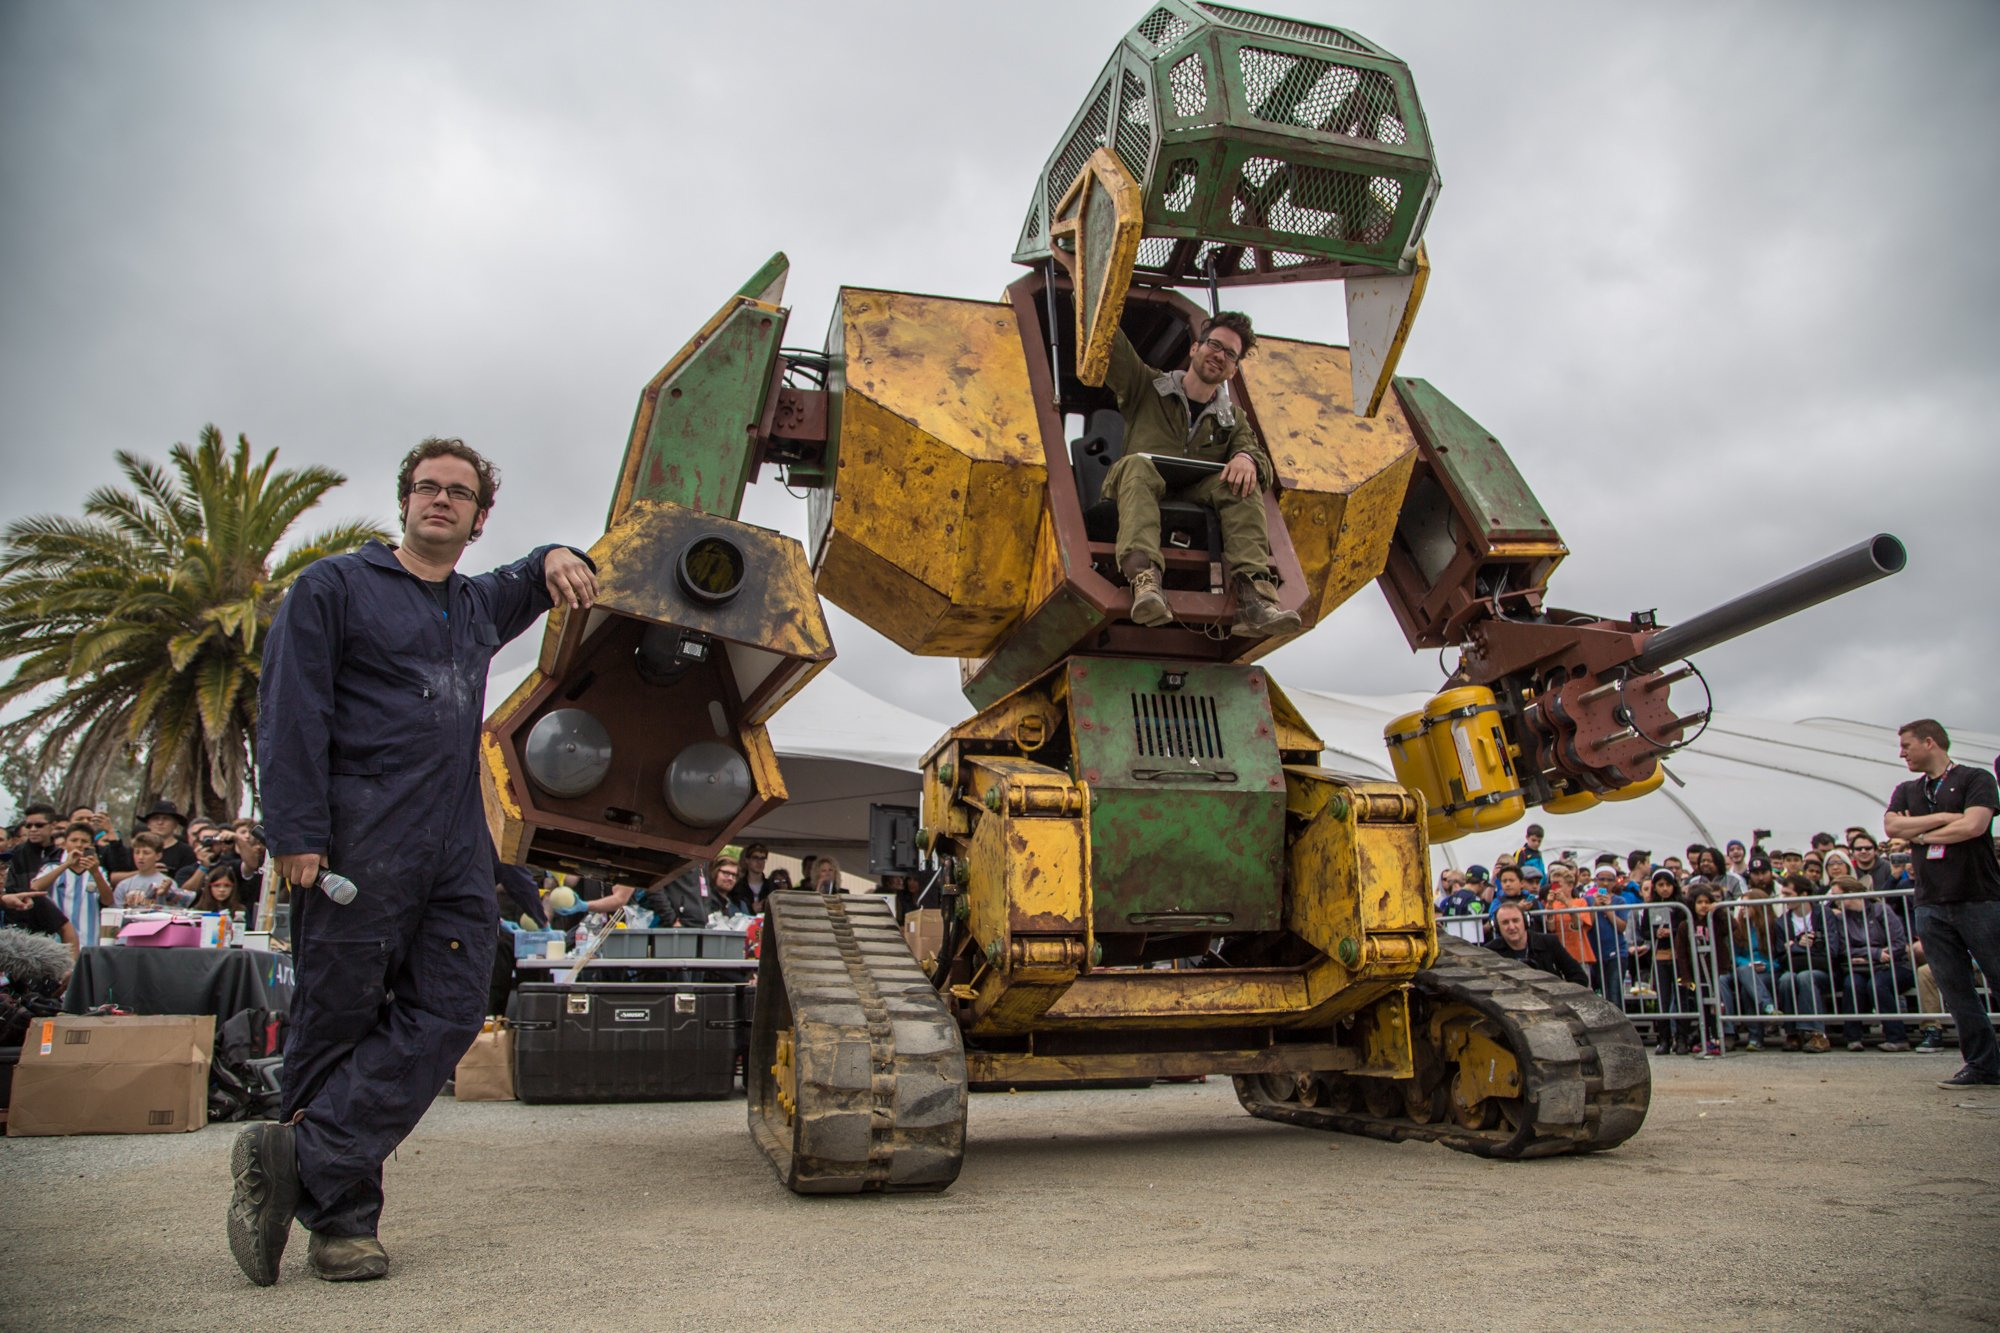 Megabots-and-NASA2